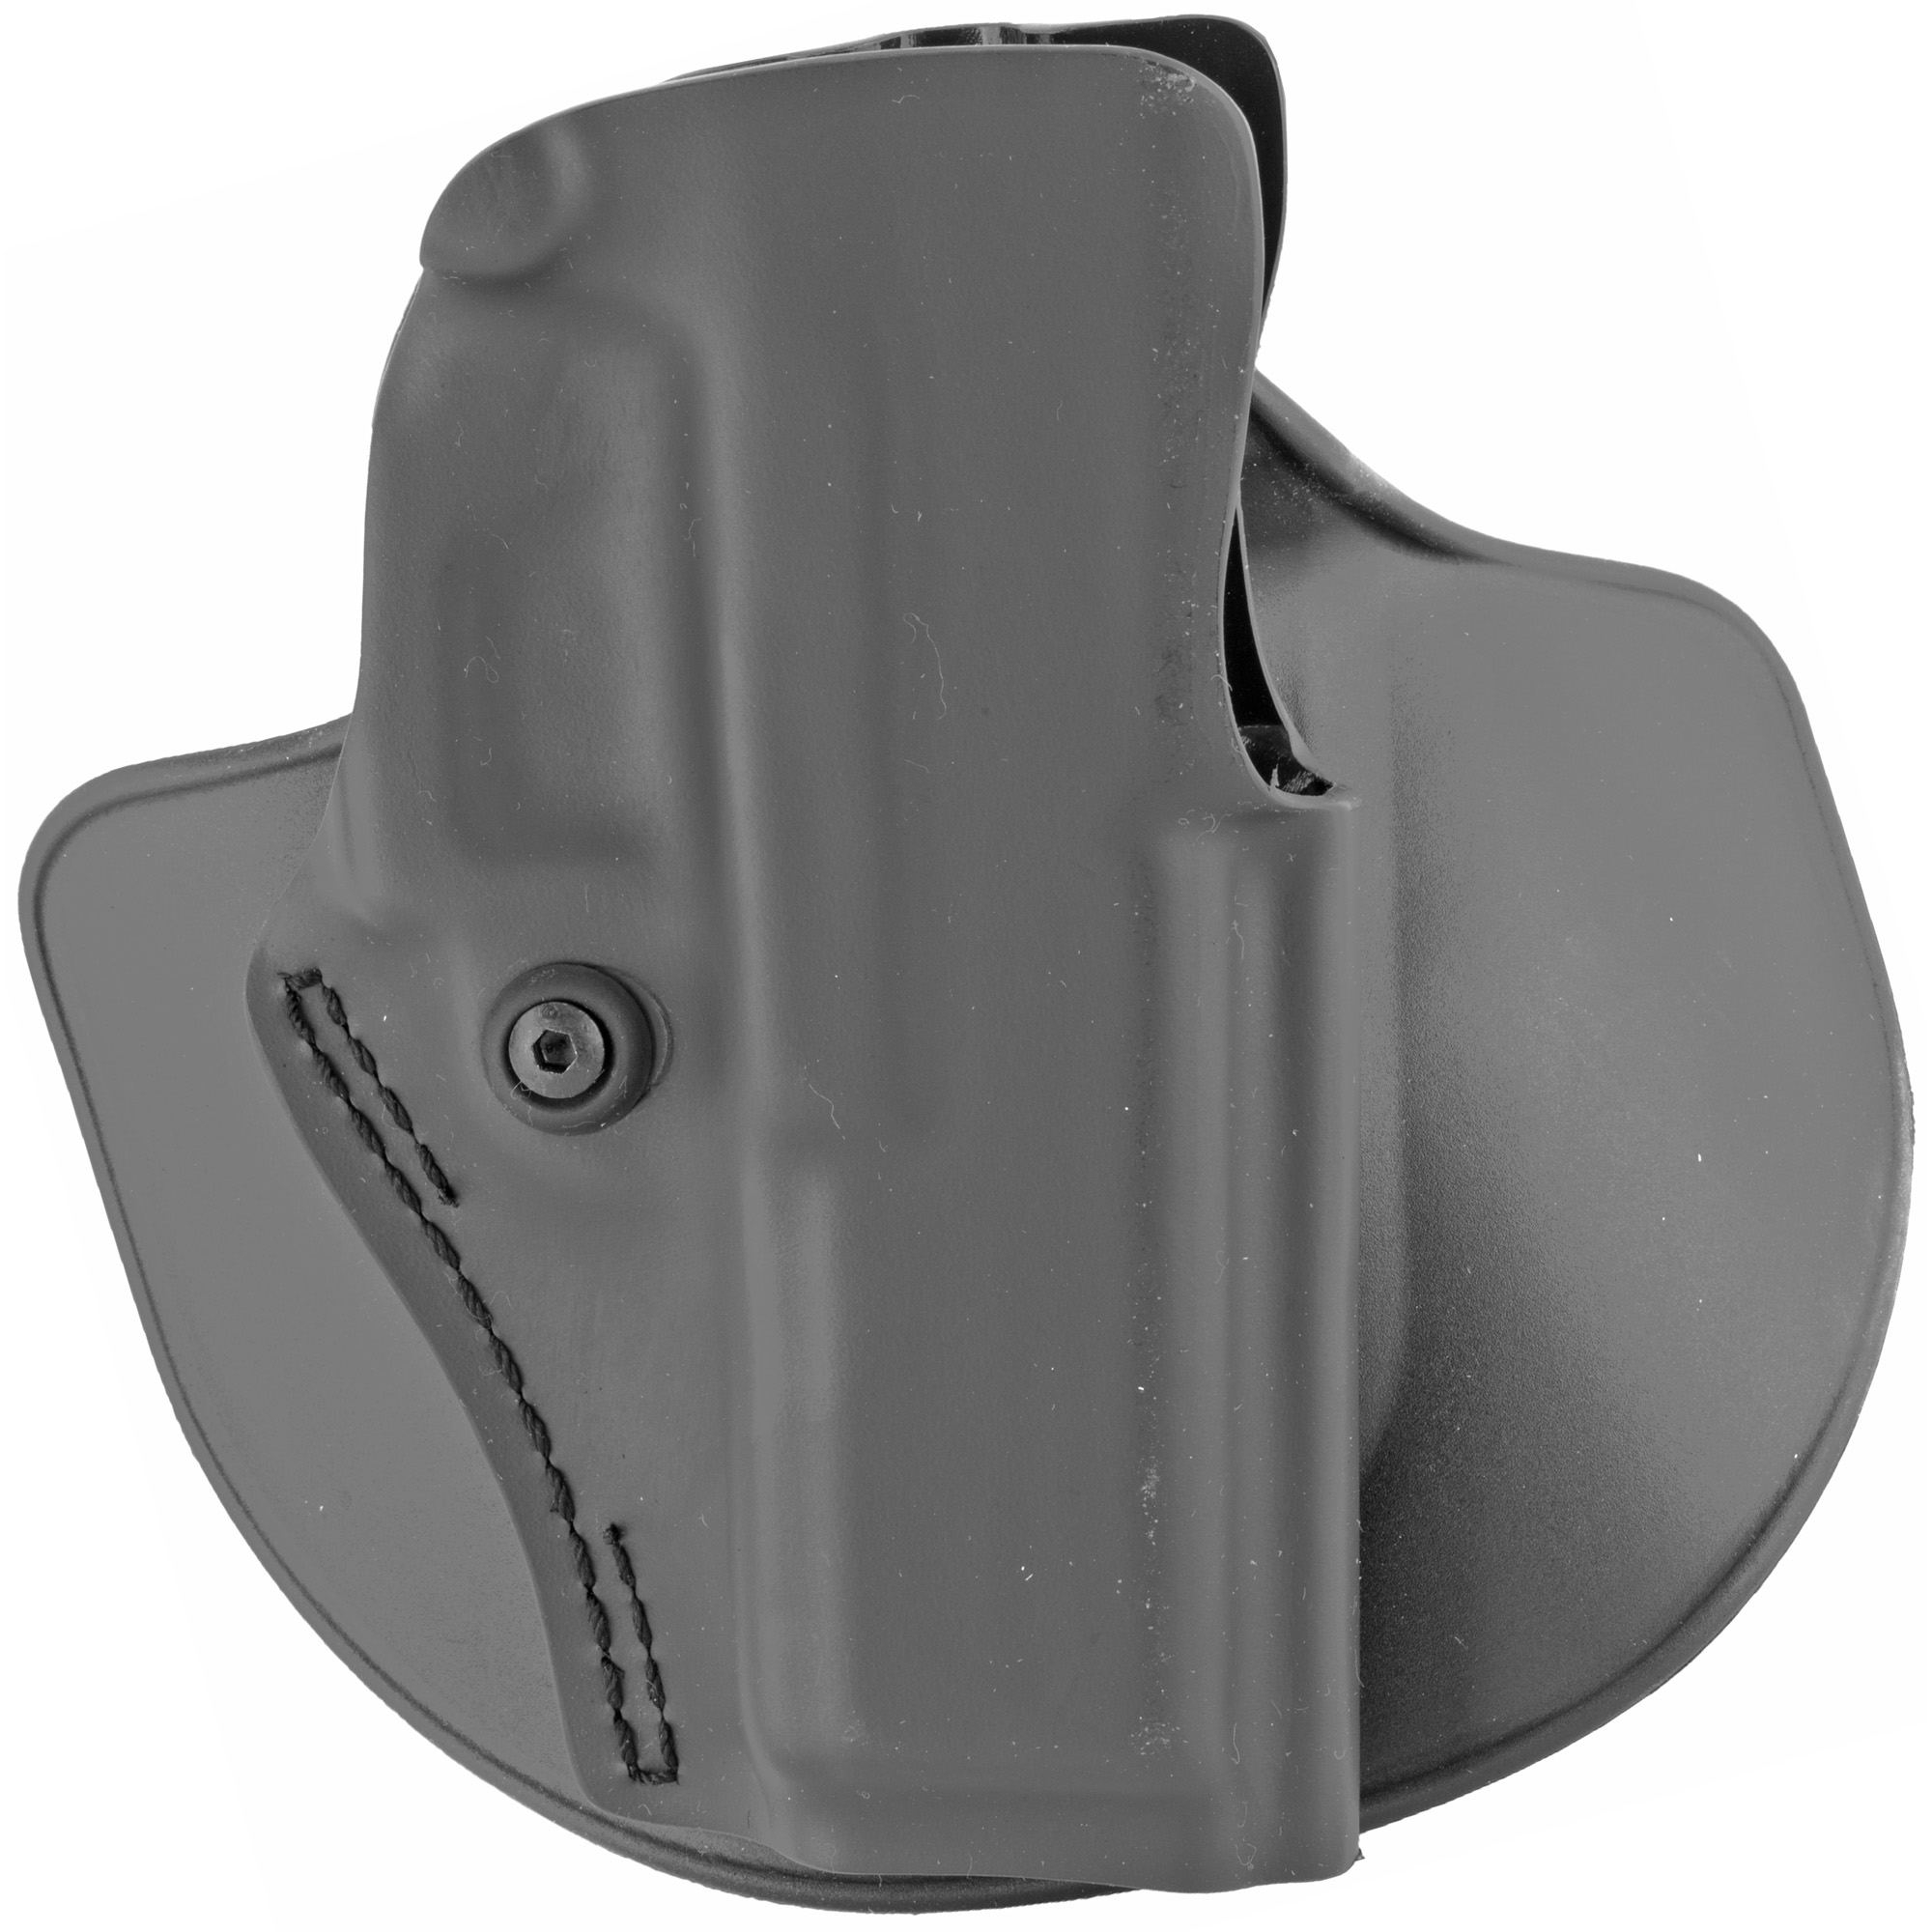 "The Safariland Model 5198 holster is lightweight"" with low-cut sides allowing for an easy draw"" and an open-top designed for defensive pistol competition. The holster is also well suited for concealed carry due to its compact size. A trigger guard detent and adjustable tension device secure the gun in the holster during rigorous activity for reliable carry retention. Durable thermoformed SafariLaminate(TM) construction makes this holster tough enough for constant wear"" and the STX finish keeps it looking good through years of use. The 5198 comes with both injection-molded paddle and belt loop"" so you can attach and adjust carry for comfort and to match your needs. The Model 5198 open-top concealment holster is IDPA and USPSA approved."